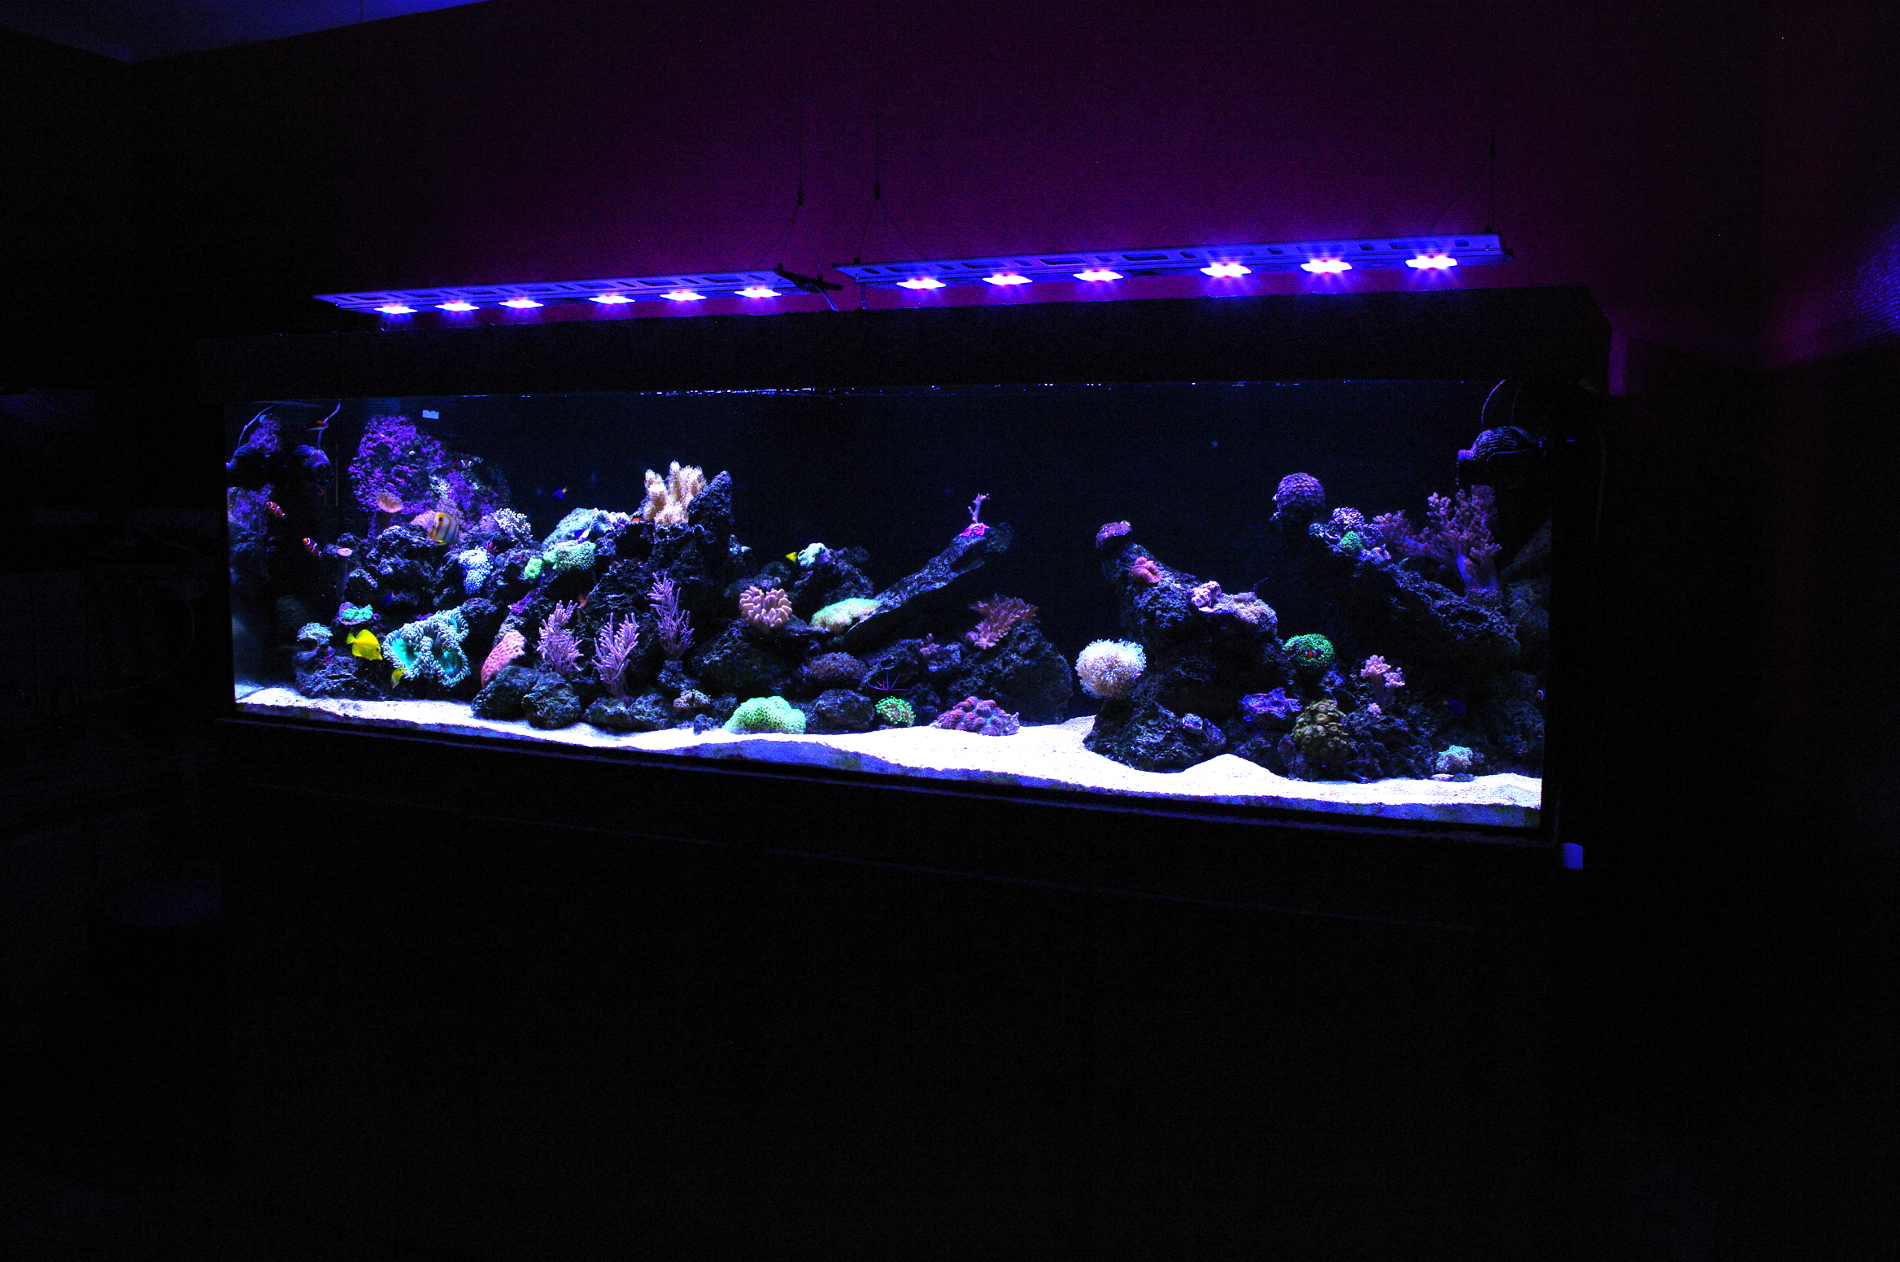 GALERIE  Mur Végétal et Aquariums sur mesureNature Design -> Aquarium Eau De Mer Design